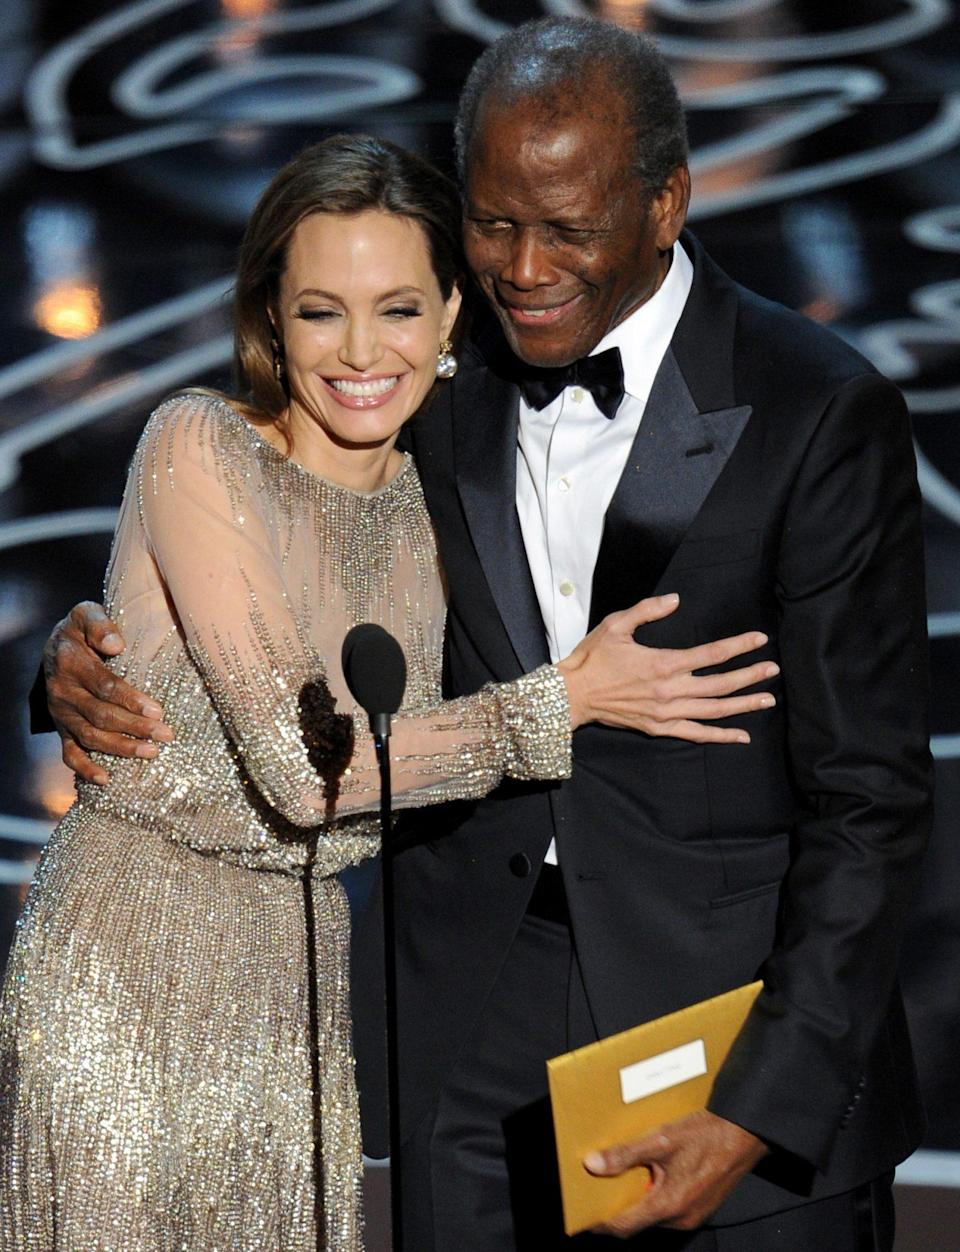 <p>Making one of his more recent public appearances at the 2014 Oscars in Los Angeles, presenting Best Director with Angelina Jolie.</p>